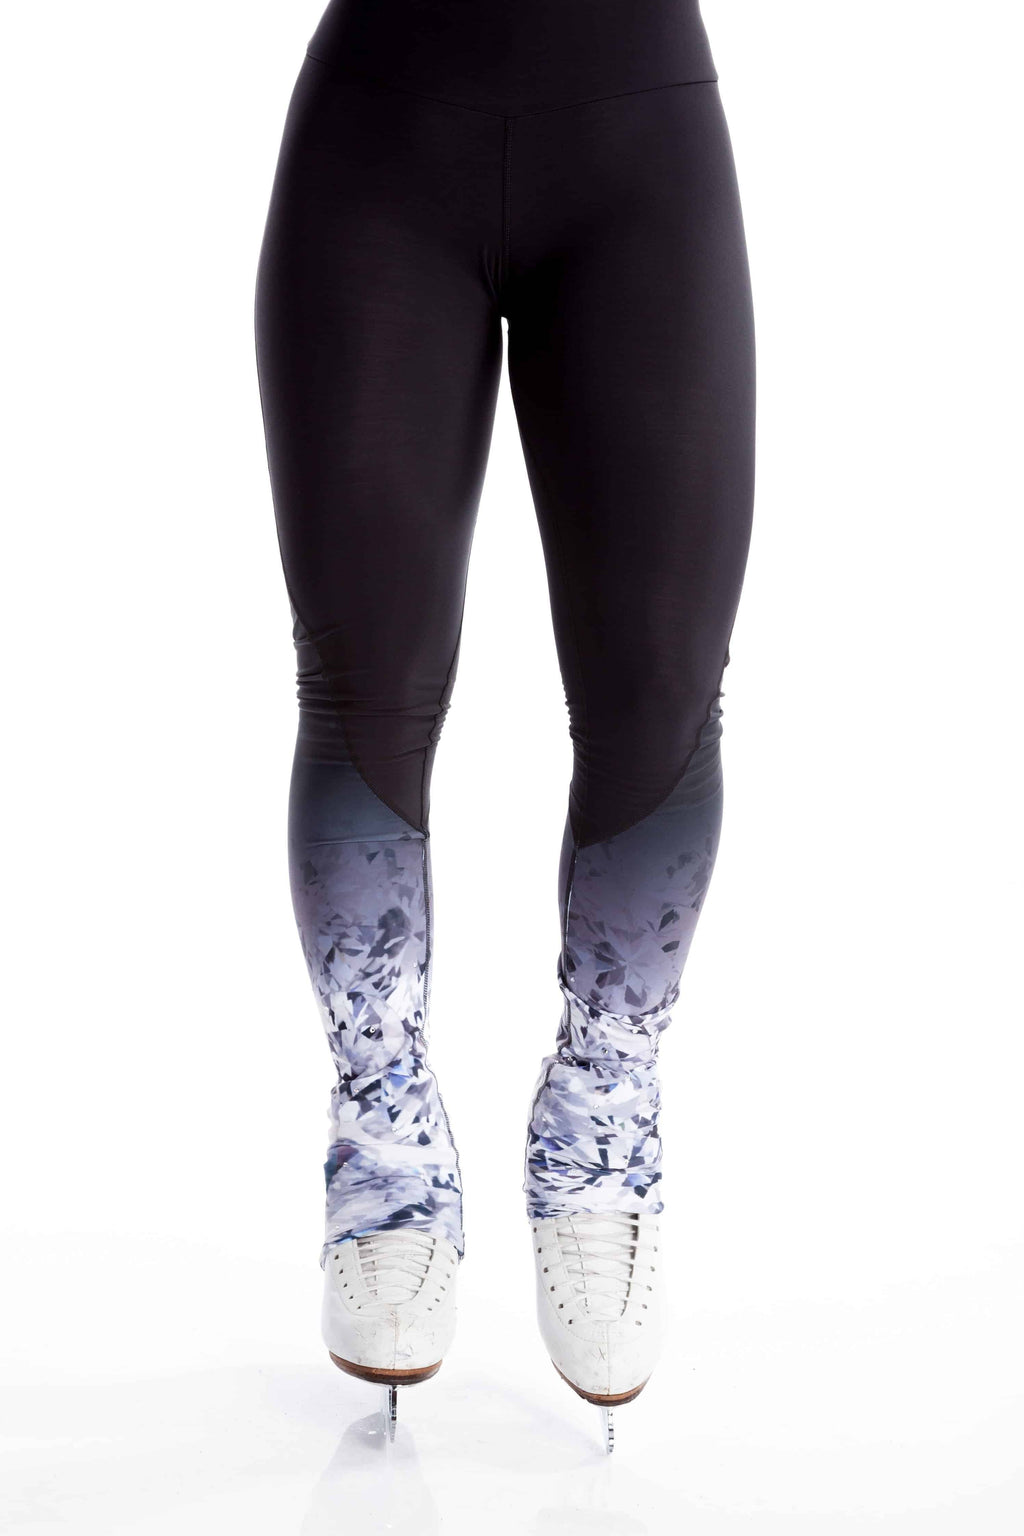 Legging with Inserts - Black Crystal - Elite Xpression